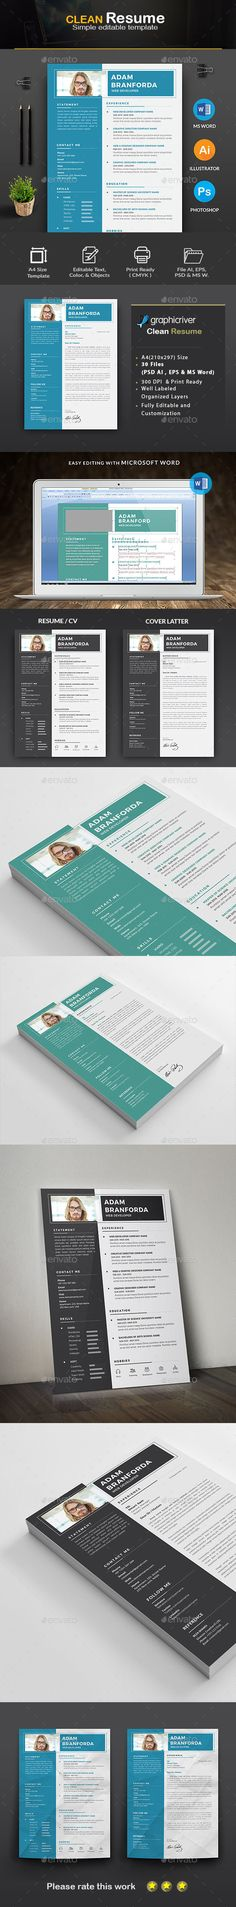 Resume by Createart PRODUCT FEATURES:A4 Paper Size Main 2 Page (Resume   Cover letter) 300 DPI